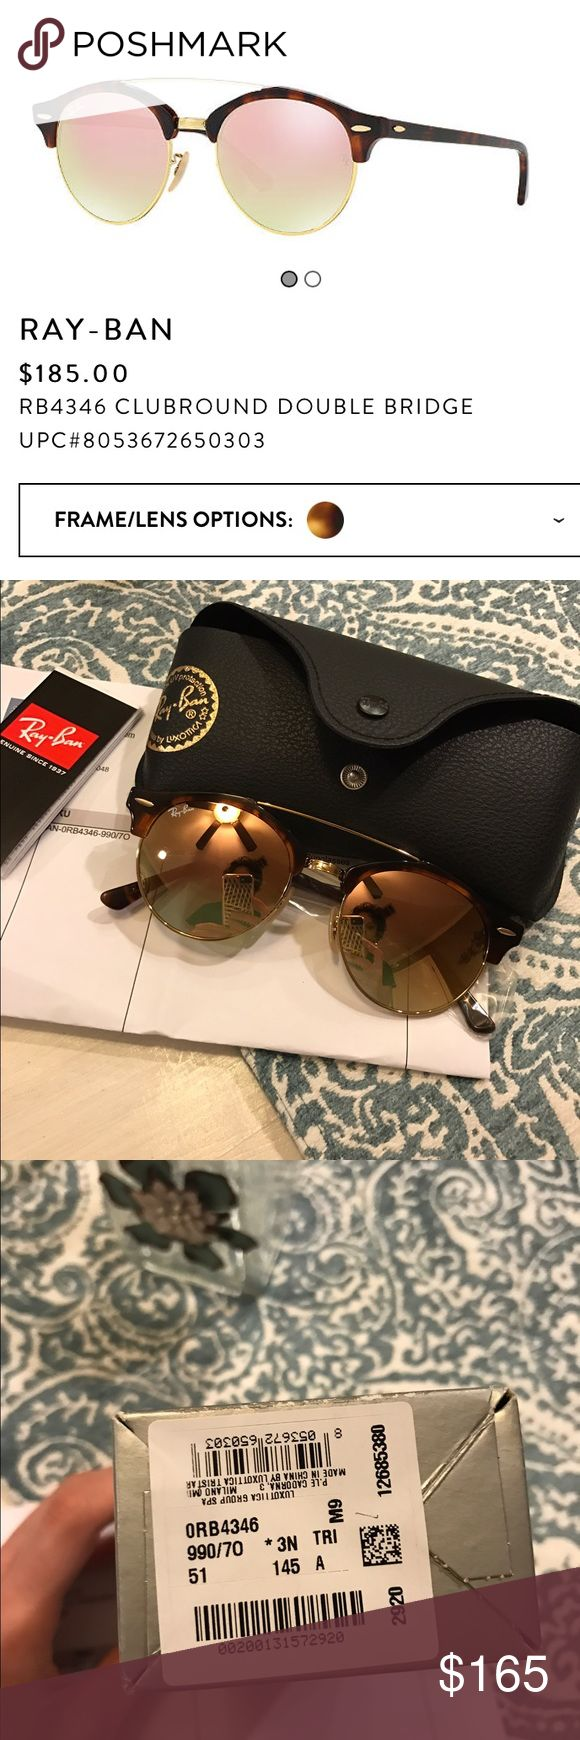 """Rayban Clubmaster Double Bridge Tortoise Rose Gold BNIB Rayban ClubRound Clubmaster Tortoise and Rose Gold /Copper Flash 51mm sunnies!  Sooo gorgeous, and the newest hottest style 💖😍 But my teenage daughter so graciously informed me that they are """"too small for my face""""...😩😂.  Does that mean I have a big head..?  Idk lol. Anyway.  Price is firm-ish .... just trying to recoup what I paid.   Open to trades for equal value though.  All boxes, cases, tags and proof of purchase included…"""